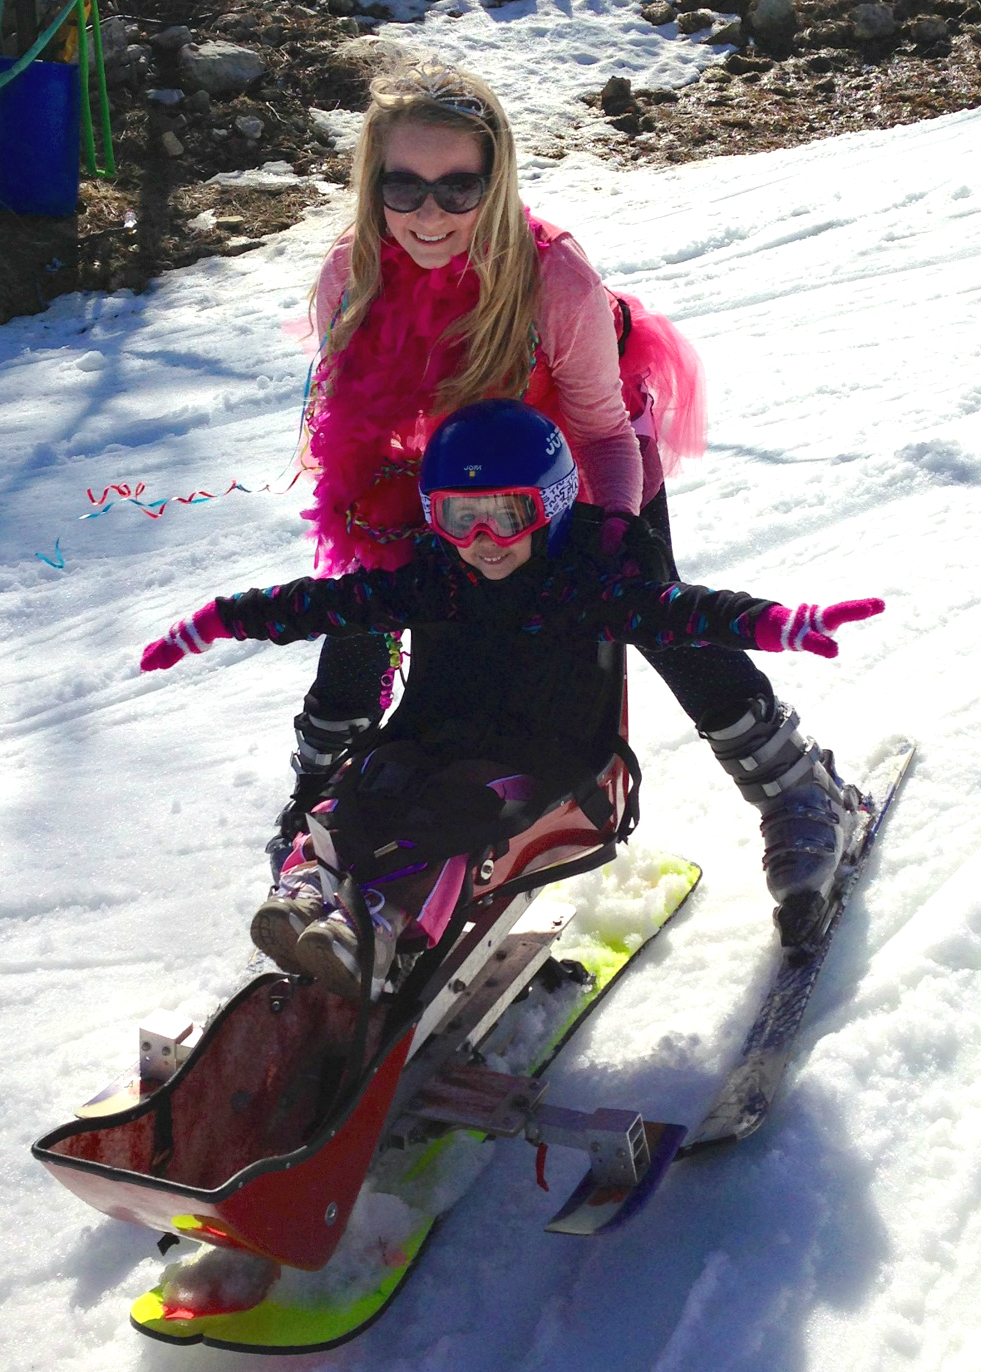 Bruno, skiing with a young client. Bruno coordinated UVA's adaptive ski program through Madison House.